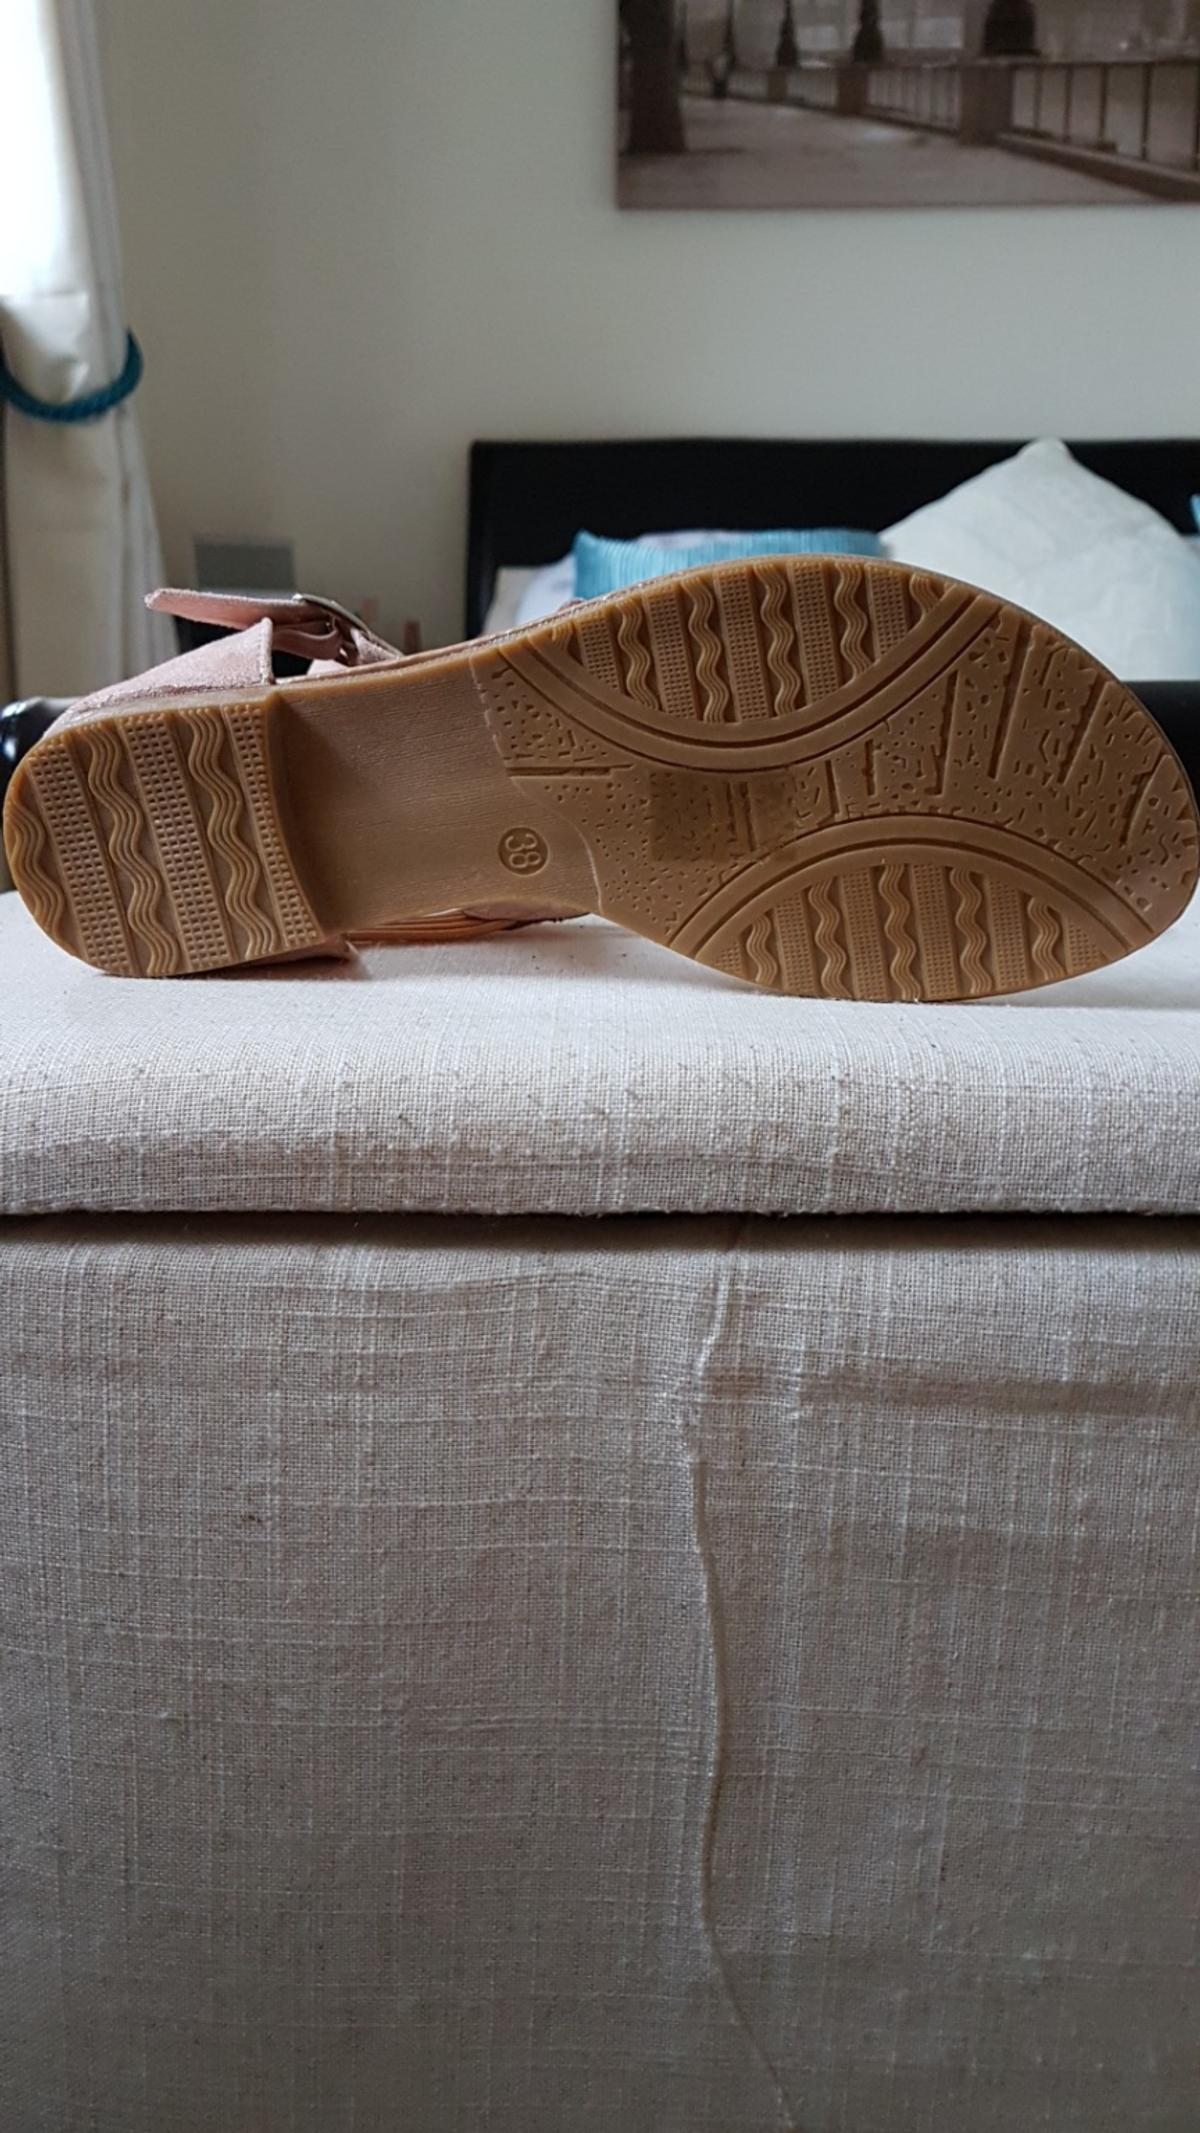 Sandals, size 5. Brand new never been worn. ( doesn't have original packaging) From a smoke free home Collection only from Halesowen.